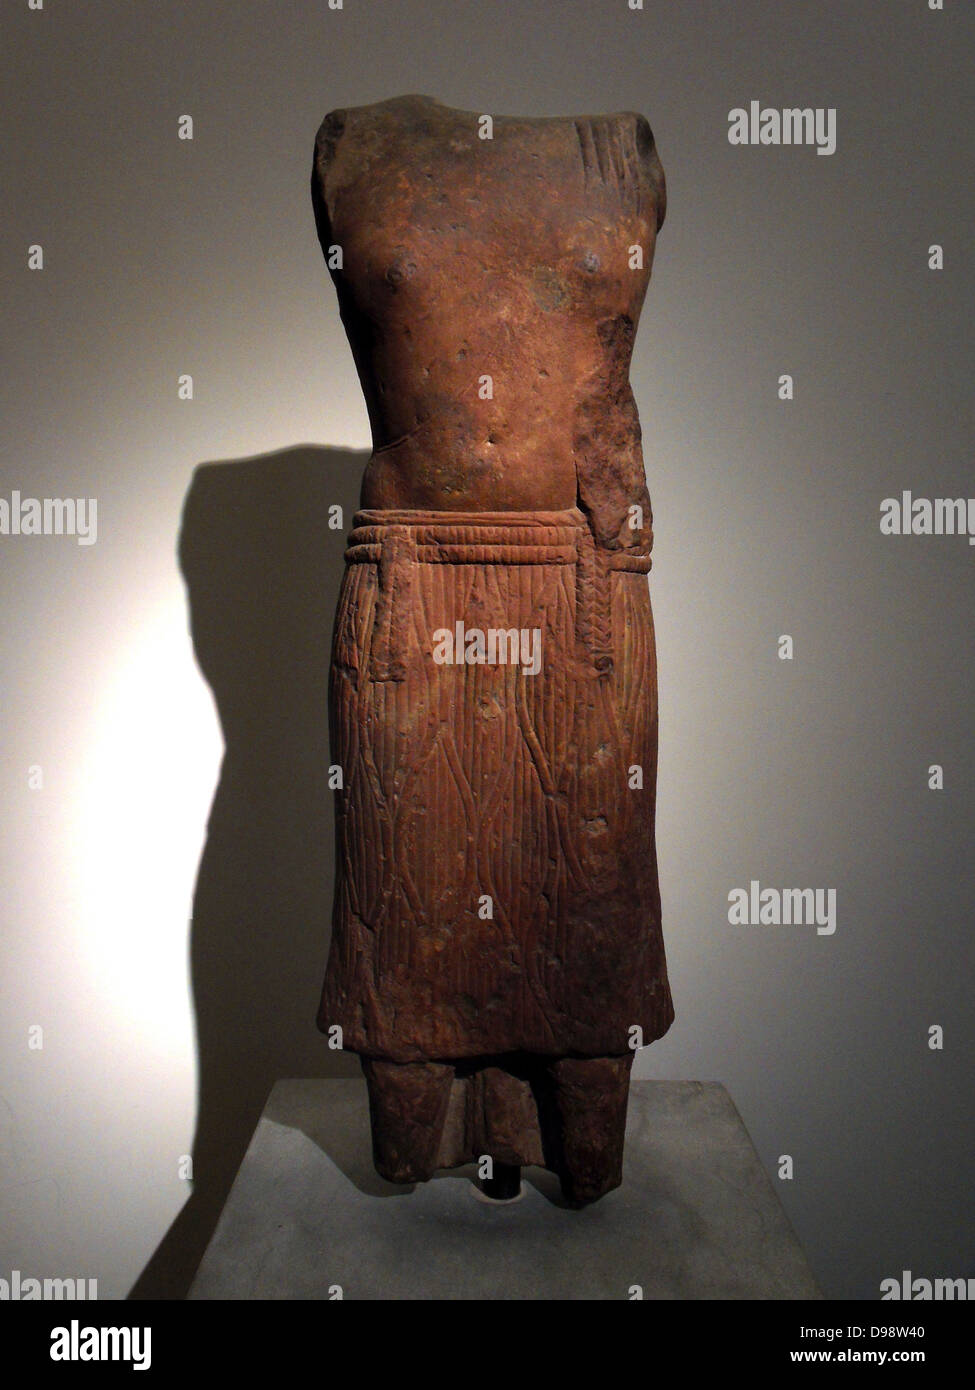 Torso of Brahmanic ascetic early 2nd century. Kushan dynasty (1st-3rd AD) Buddhist red sandstone sculpture from - Stock Image